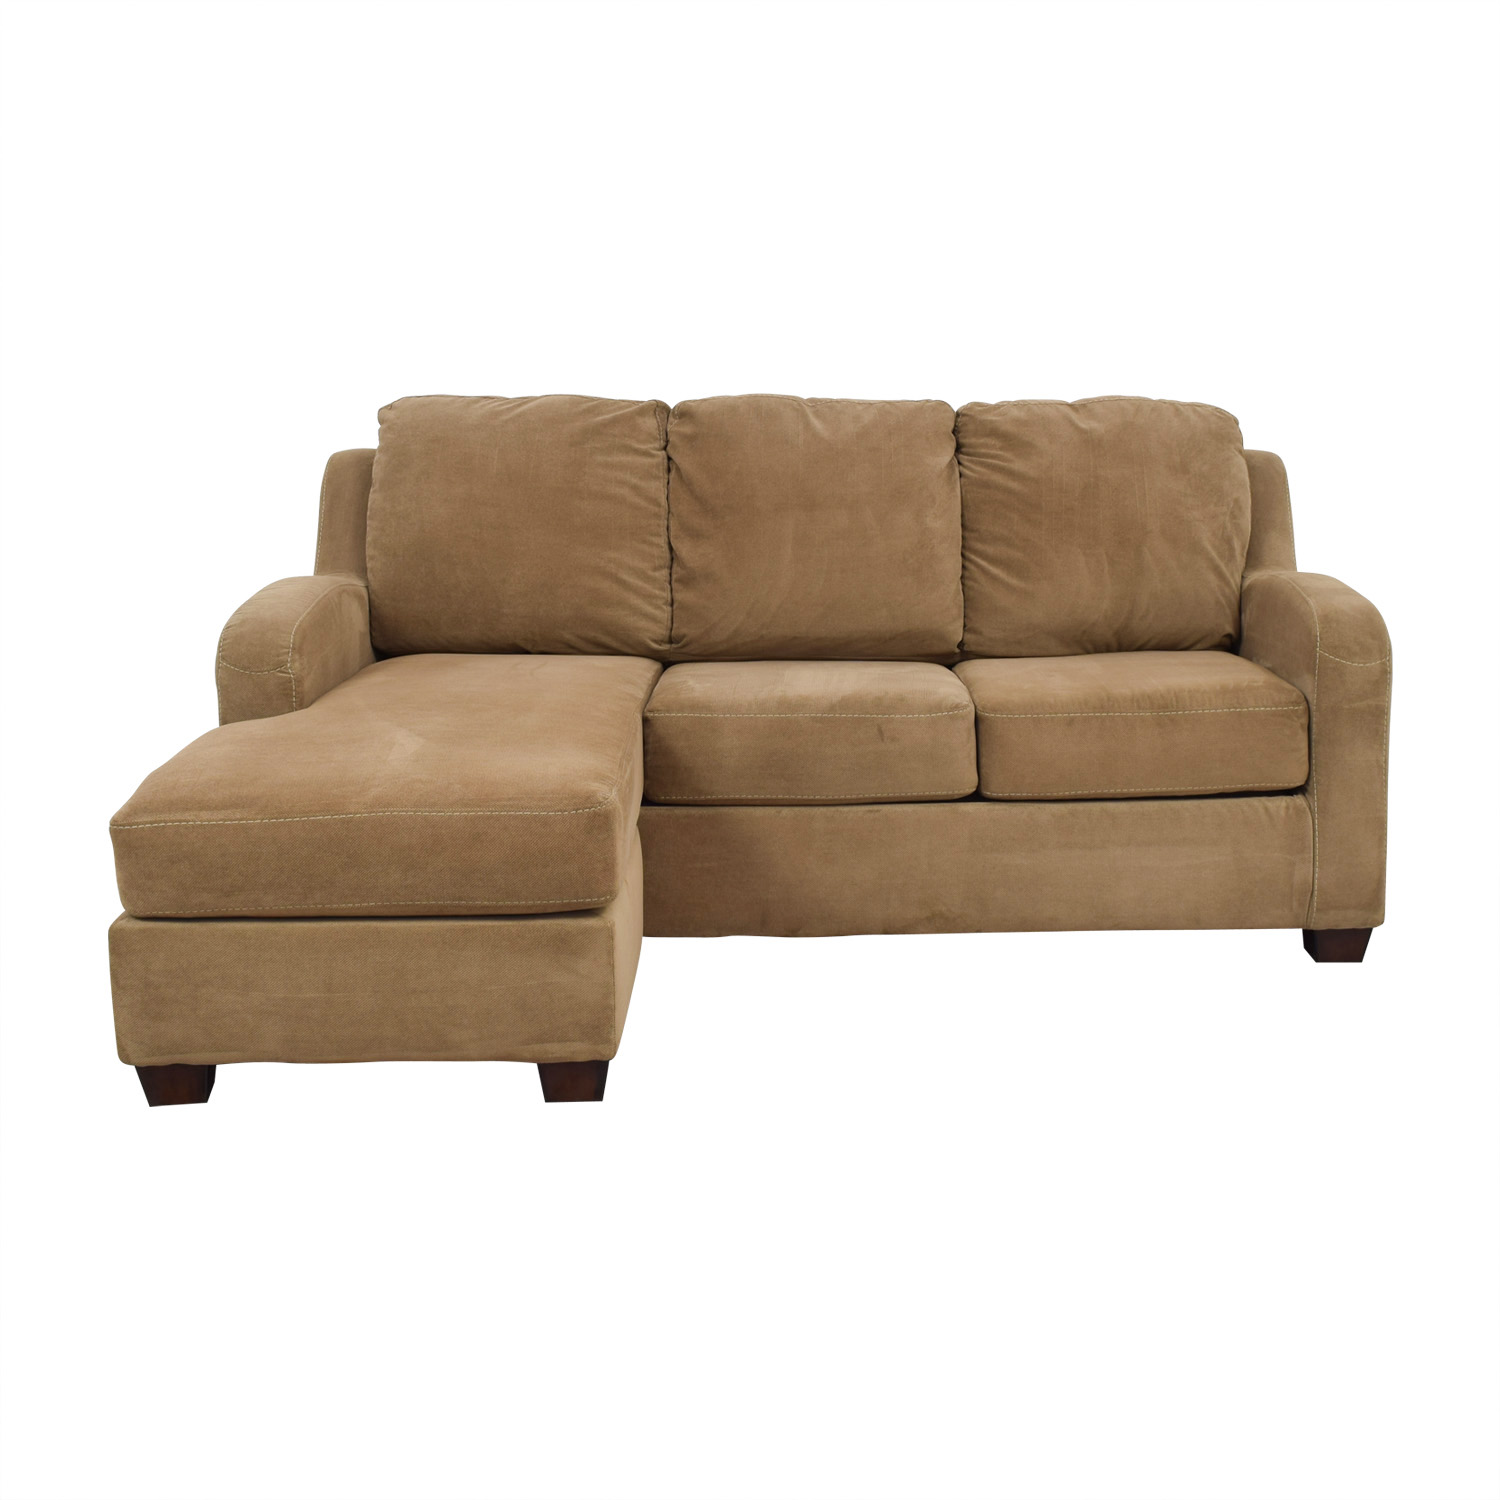 71% OFF - Ashley Furniture Ashley Furniture Tan Chaise ...